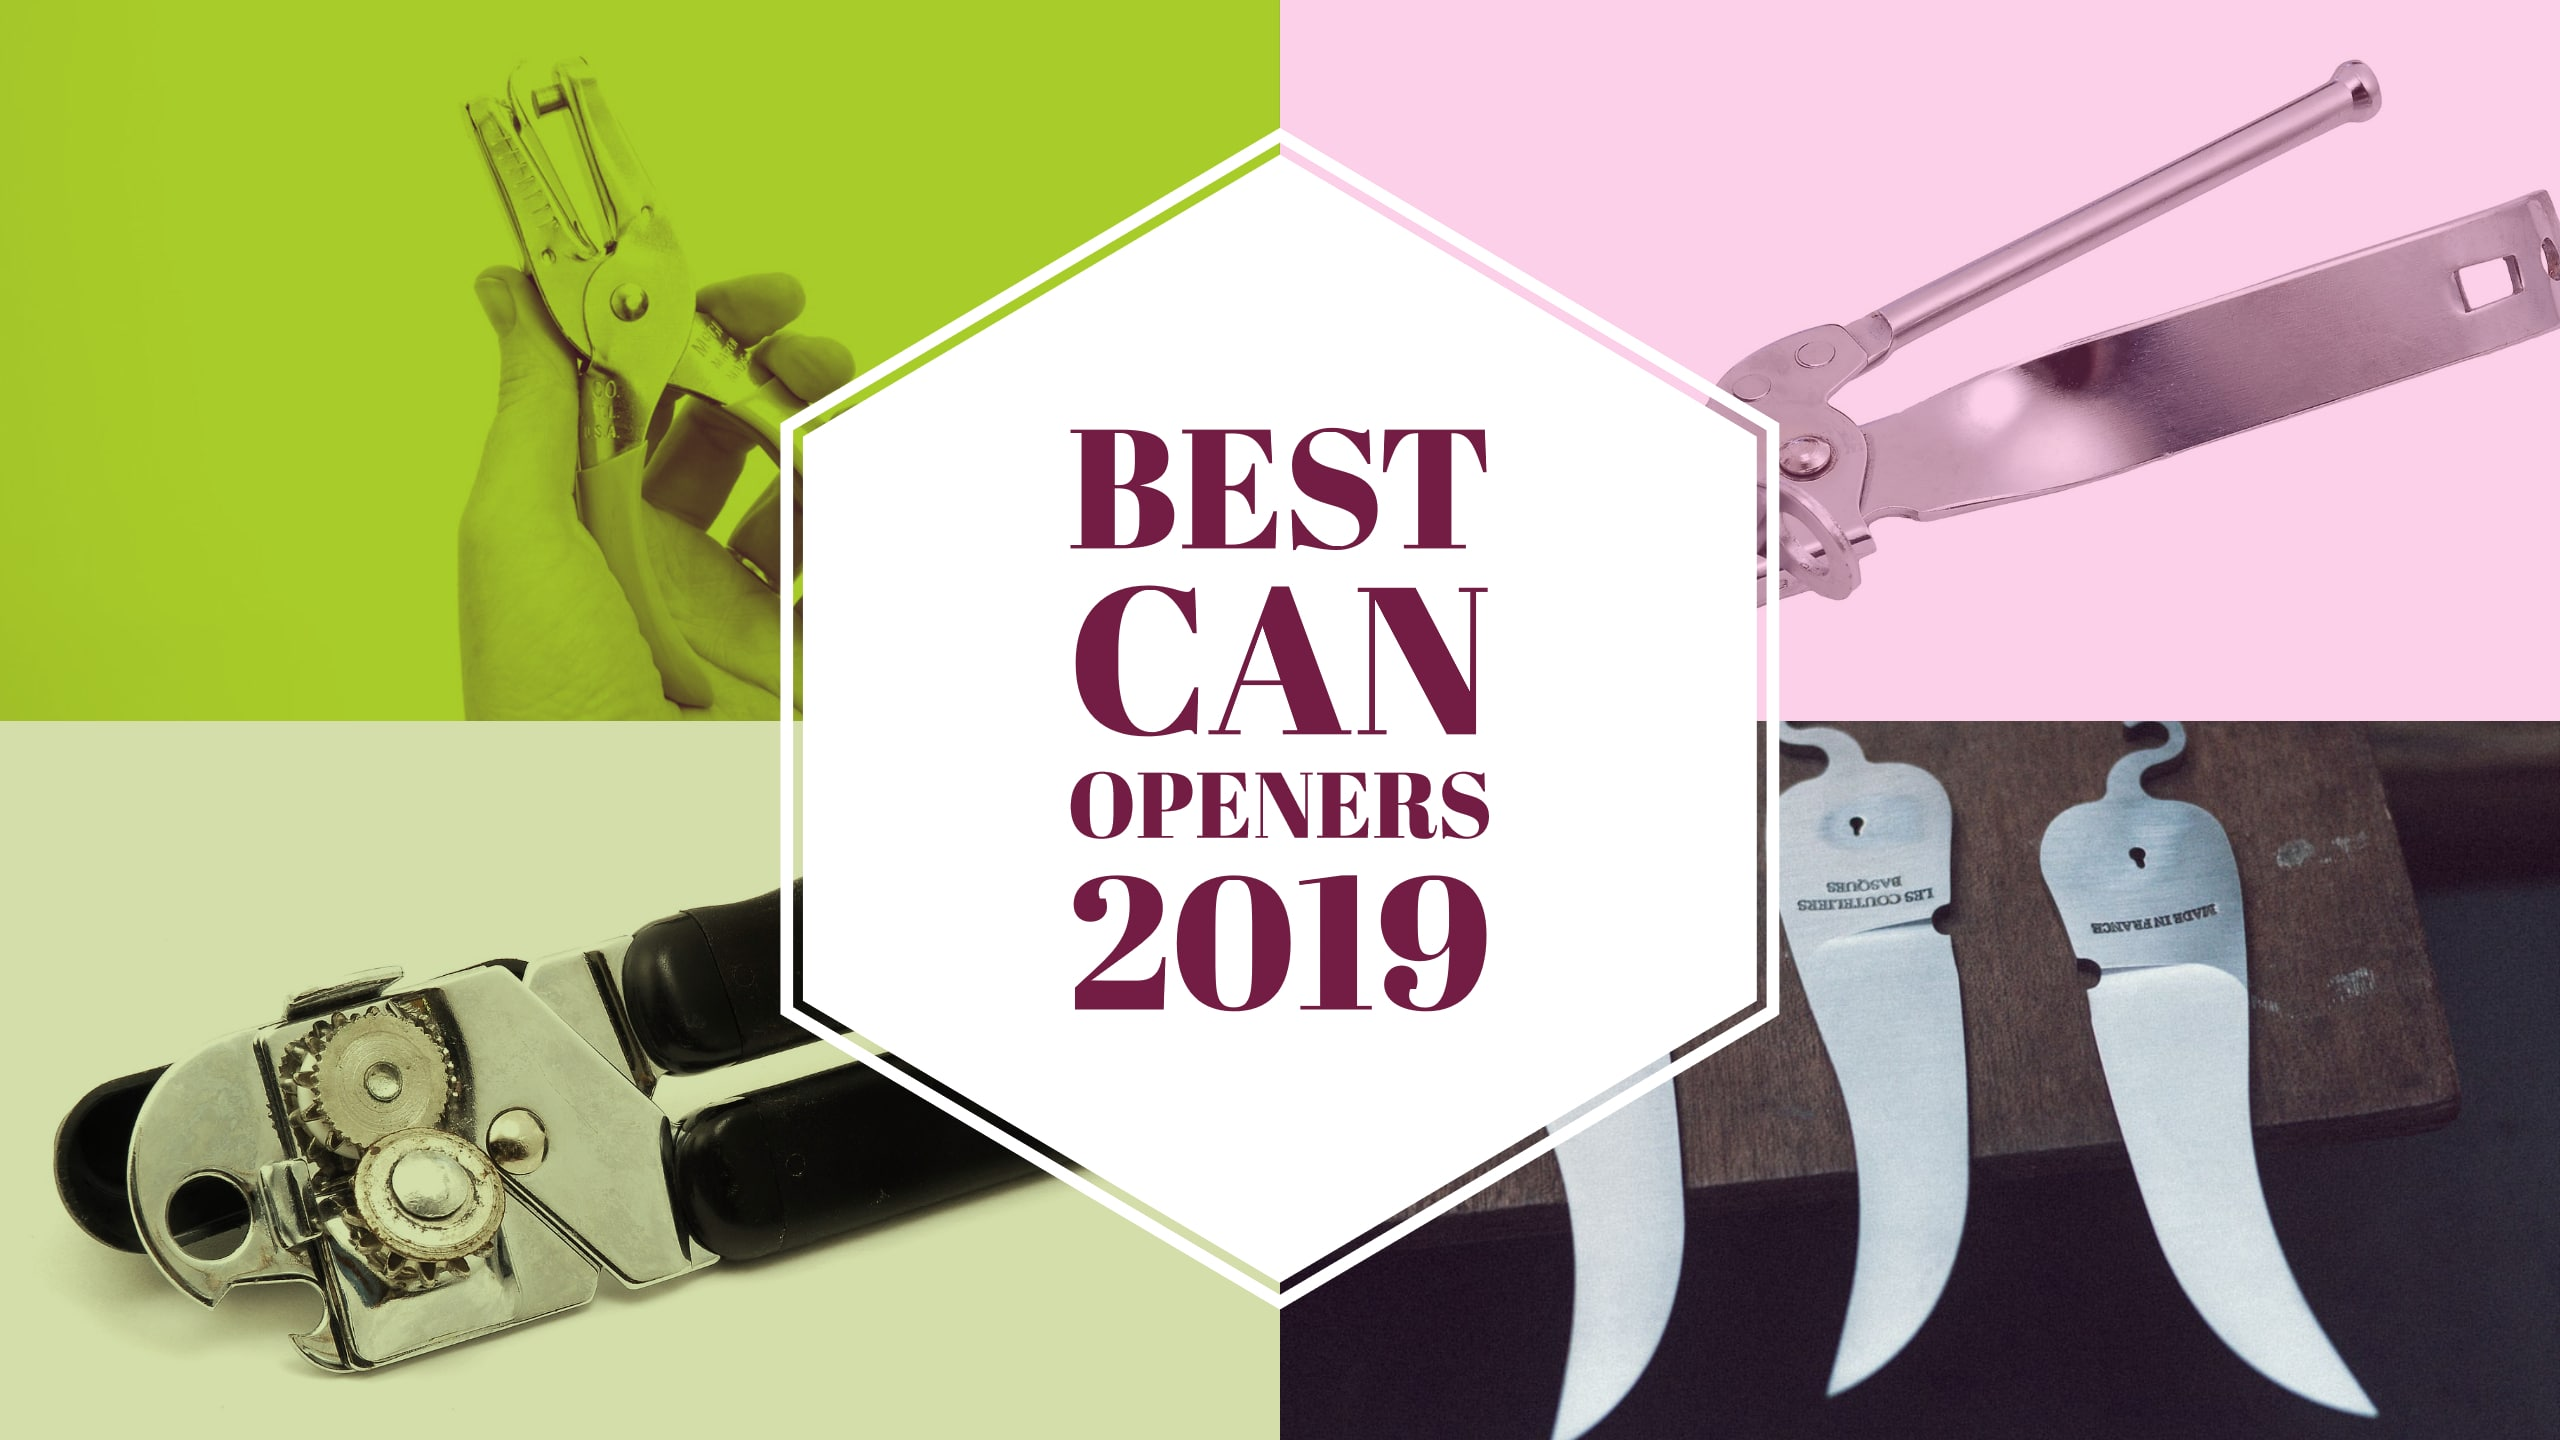 Best Can Openers 2019